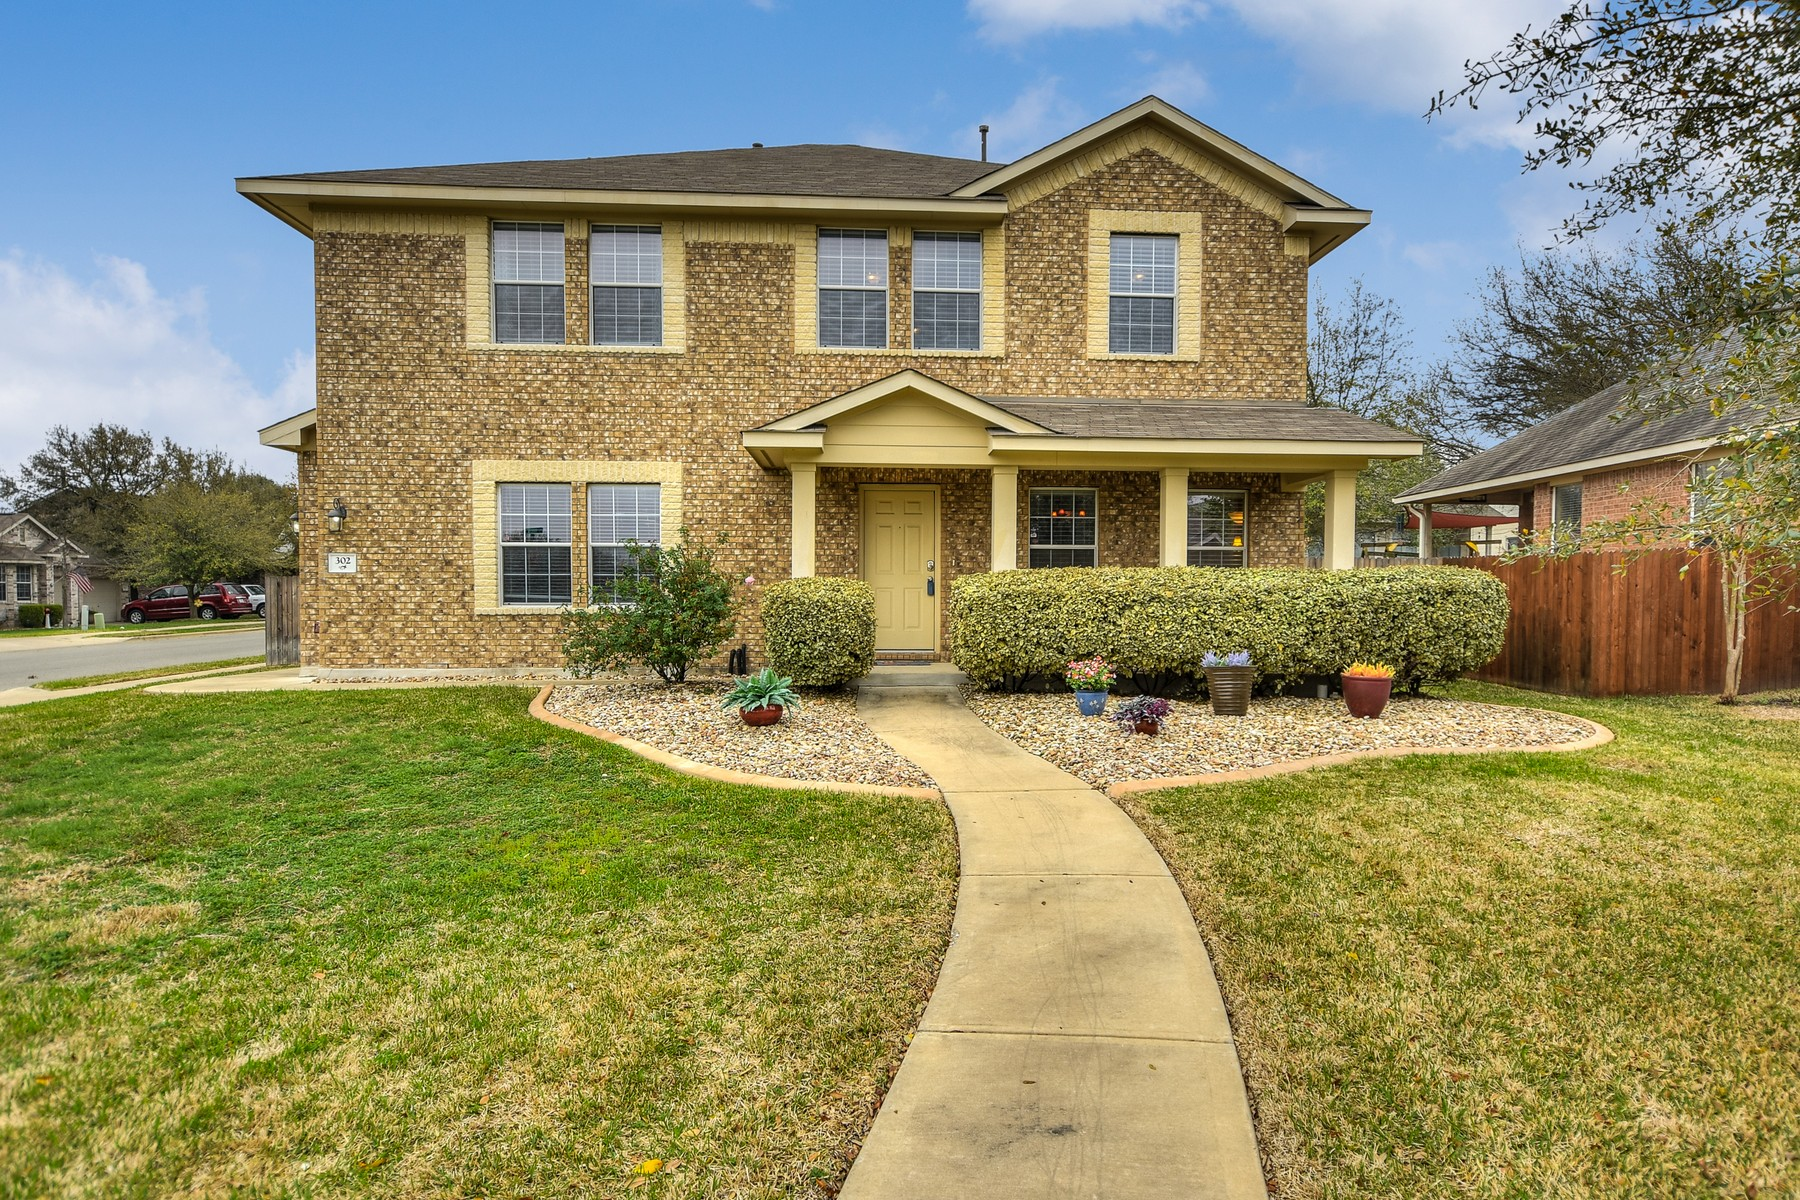 Single Family Home for Sale at Vista Ridge Corner Lot Home 302 Olmos Dr Leander, Texas 78641 United States